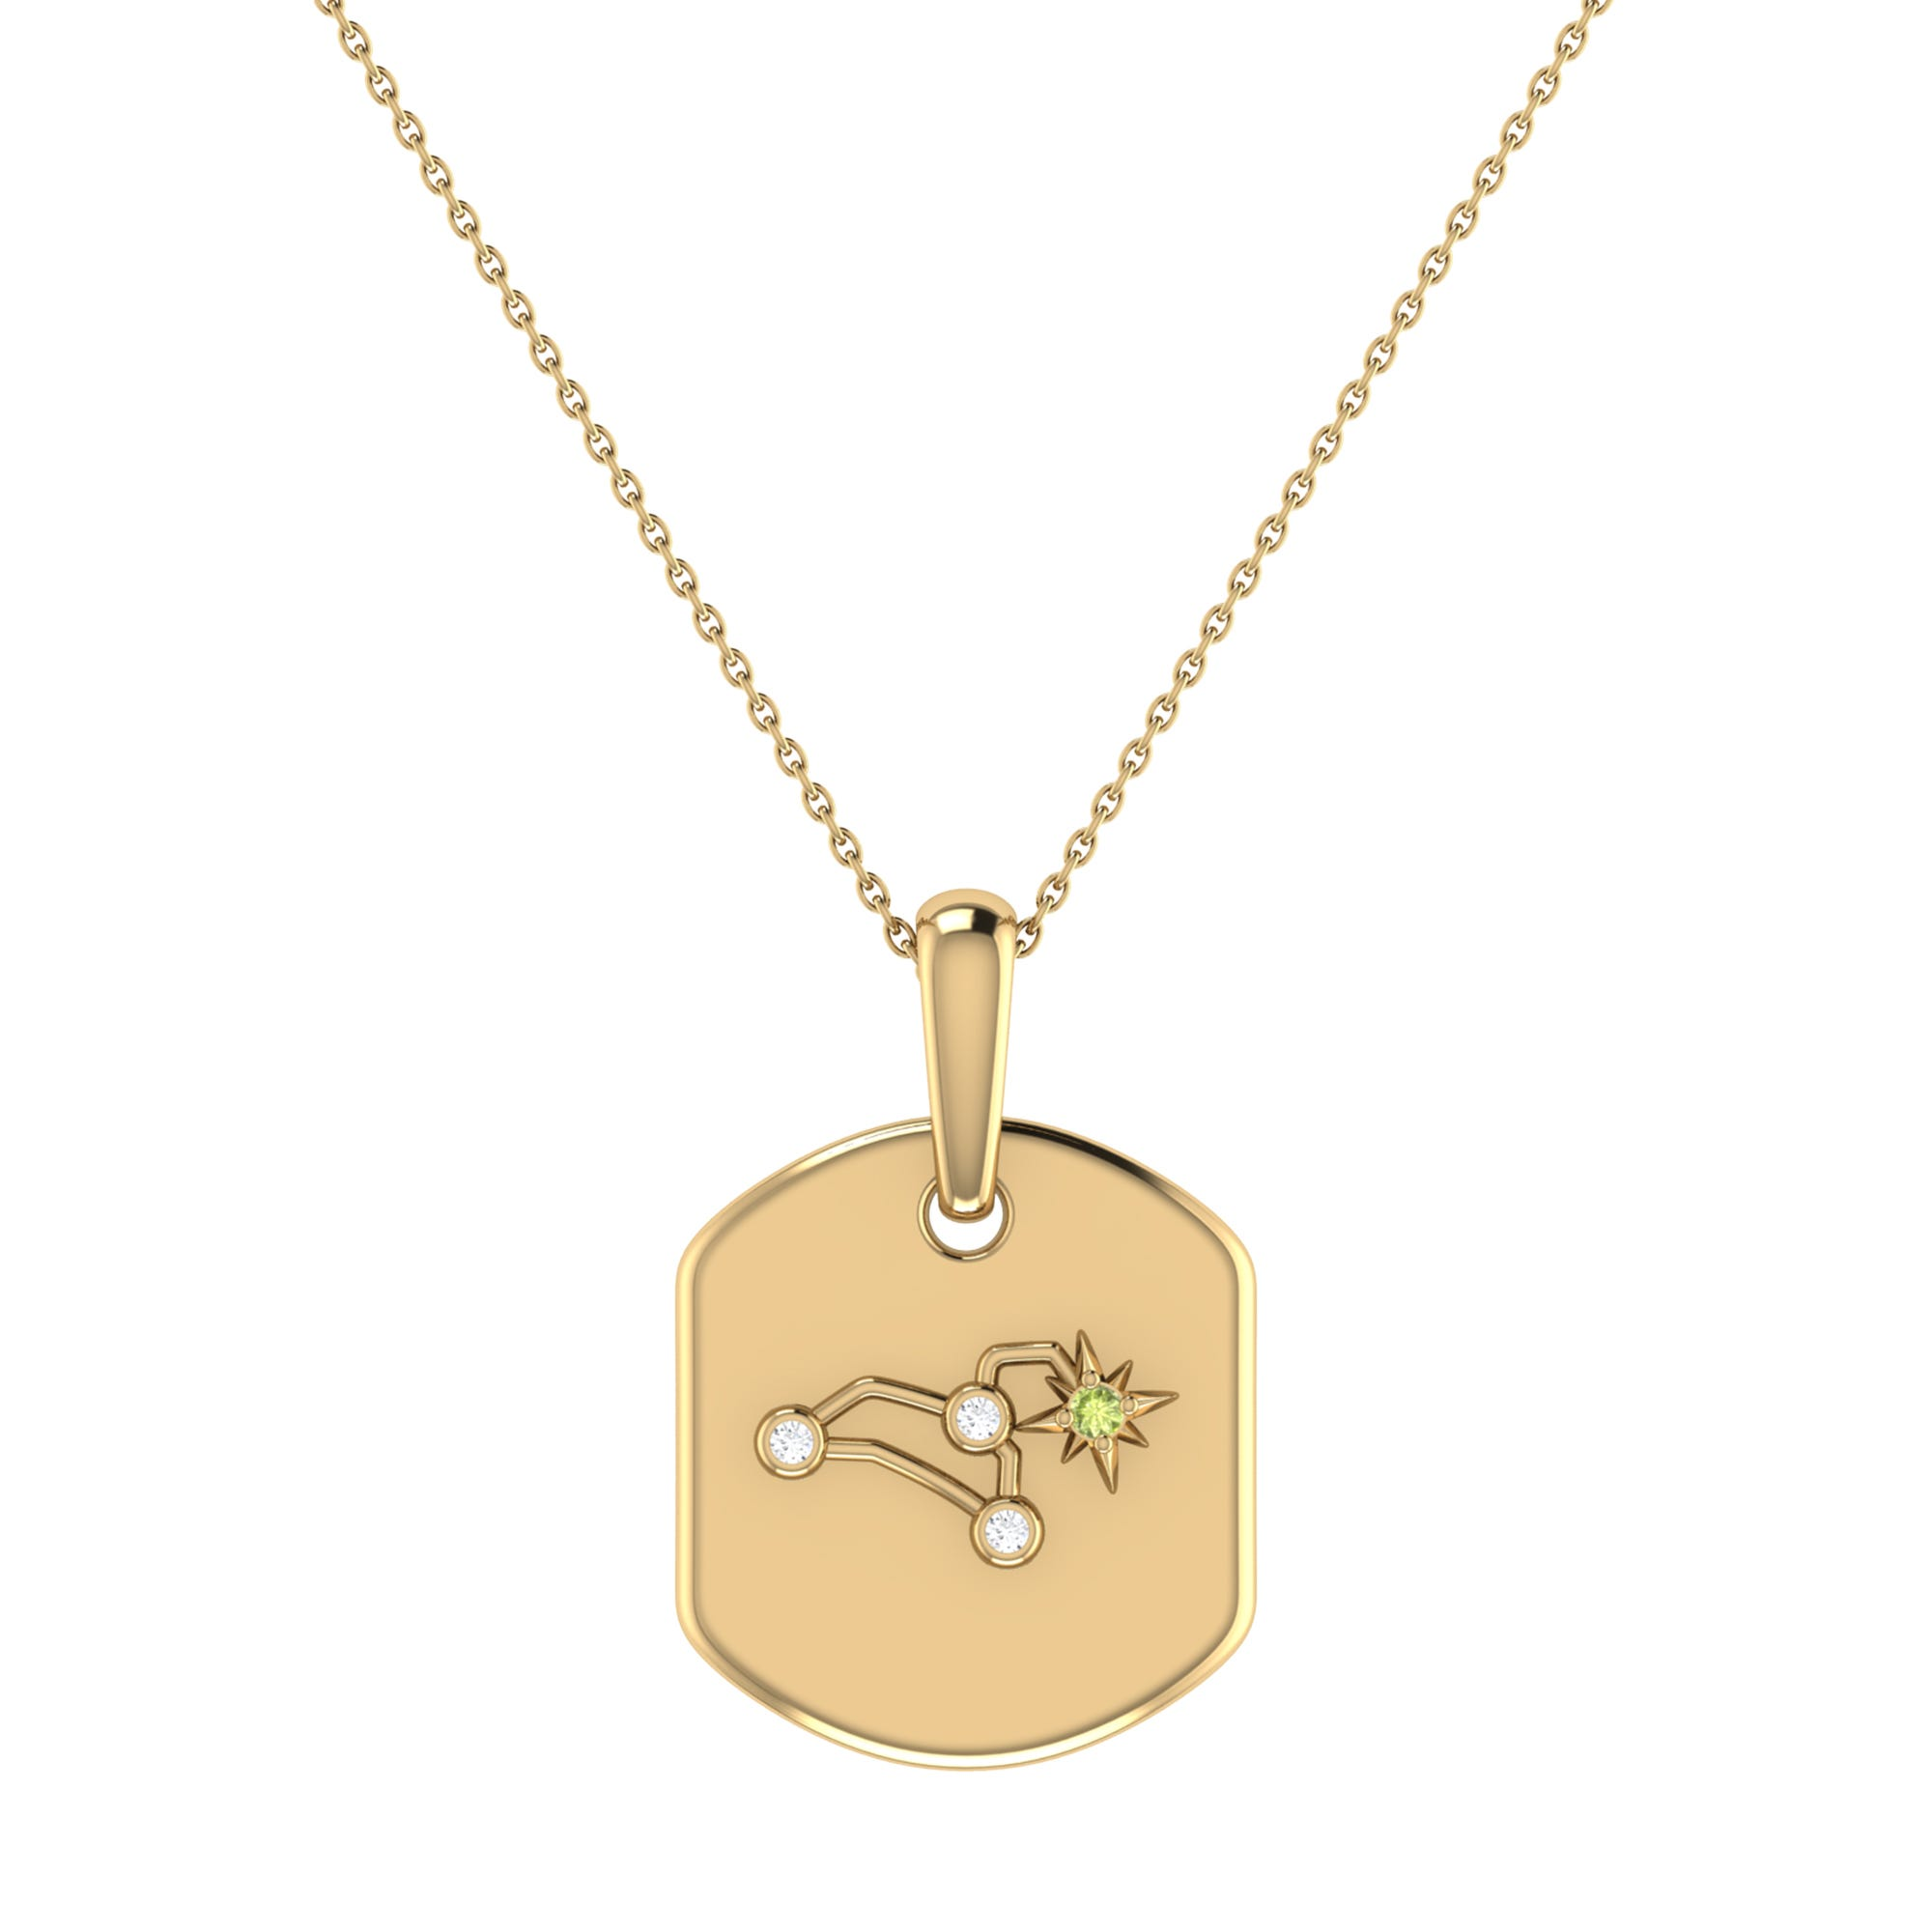 Diamond and Peridot Leo Constellation Tag Necklace in 14k Yellow Gold Plated Sterling Silver